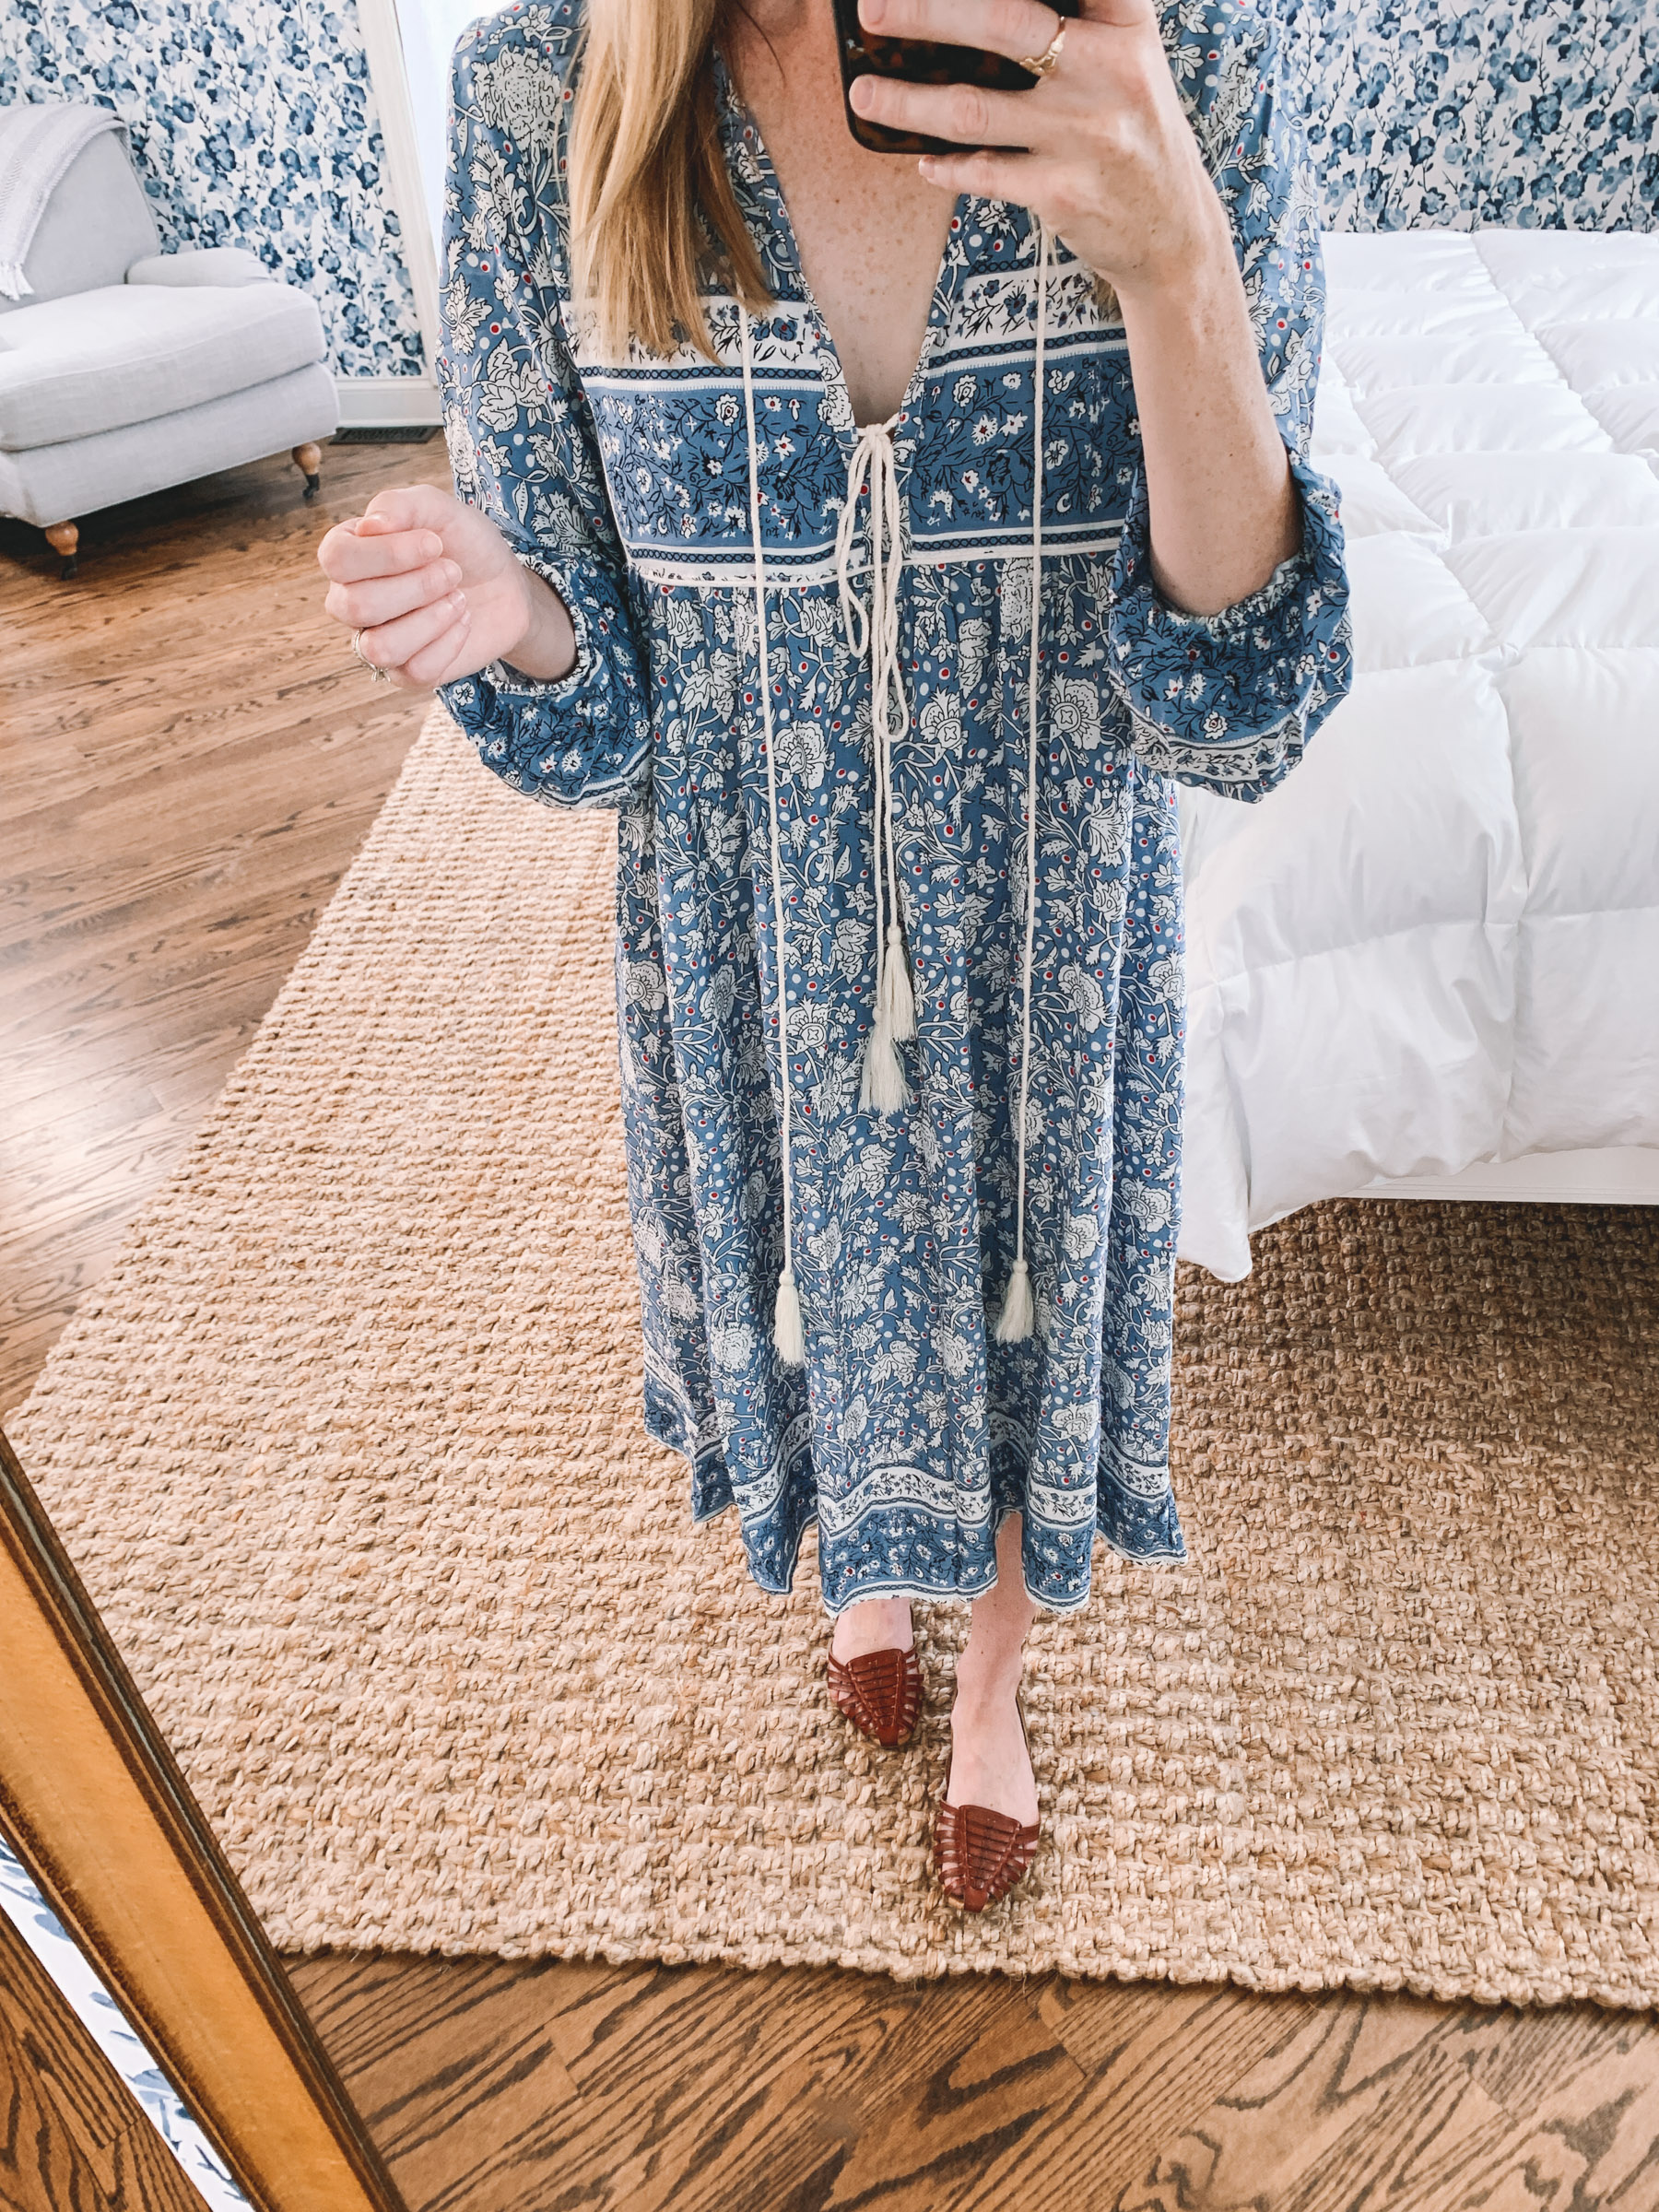 Kelly is featuring the $28 Amazon Vivimos Mumu